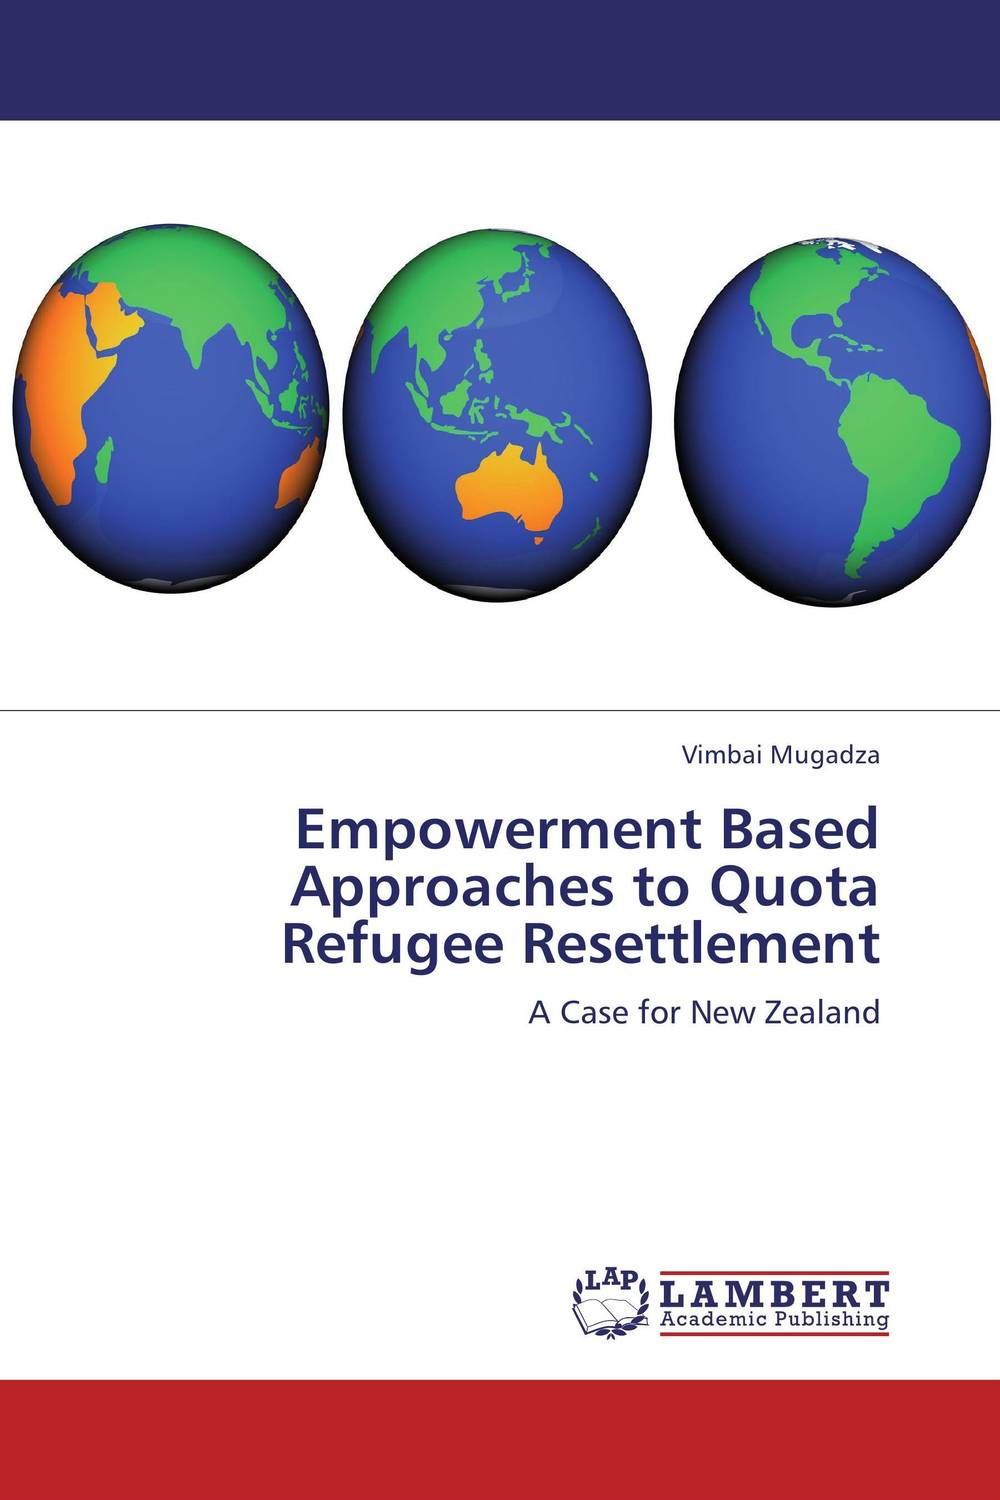 Empowerment Based Approaches to Quota Refugee Resettlement